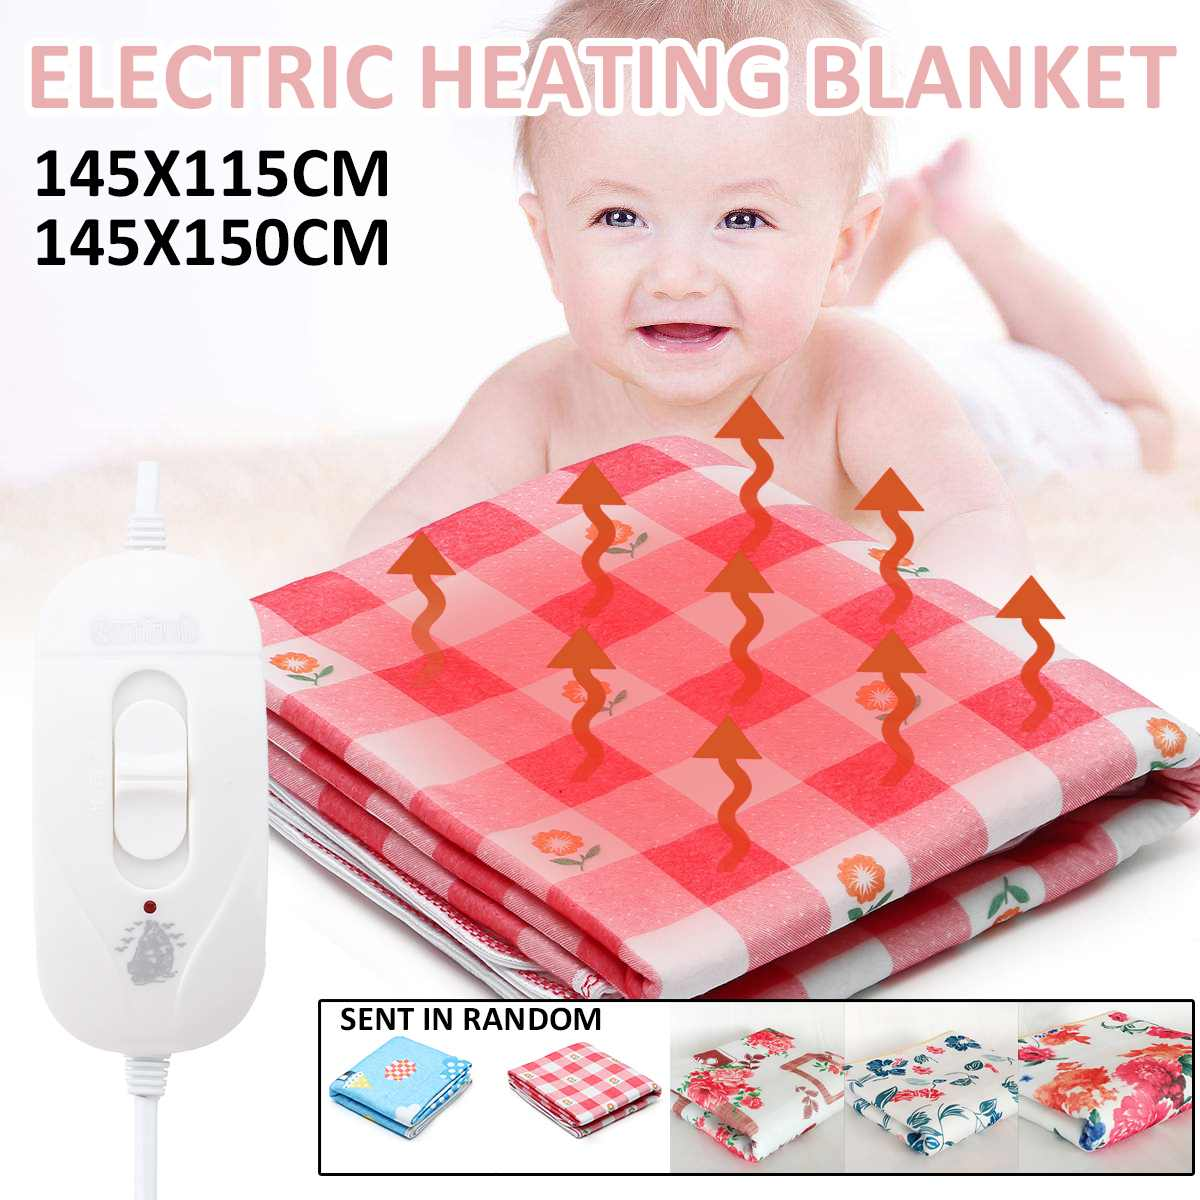 220VElectric Heating Blanket Double Three Person Bed Heated Pad Security Winter Heater Warmer Baby Kids Cover Bedding Mat Carpet220VElectric Heating Blanket Double Three Person Bed Heated Pad Security Winter Heater Warmer Baby Kids Cover Bedding Mat Carpet